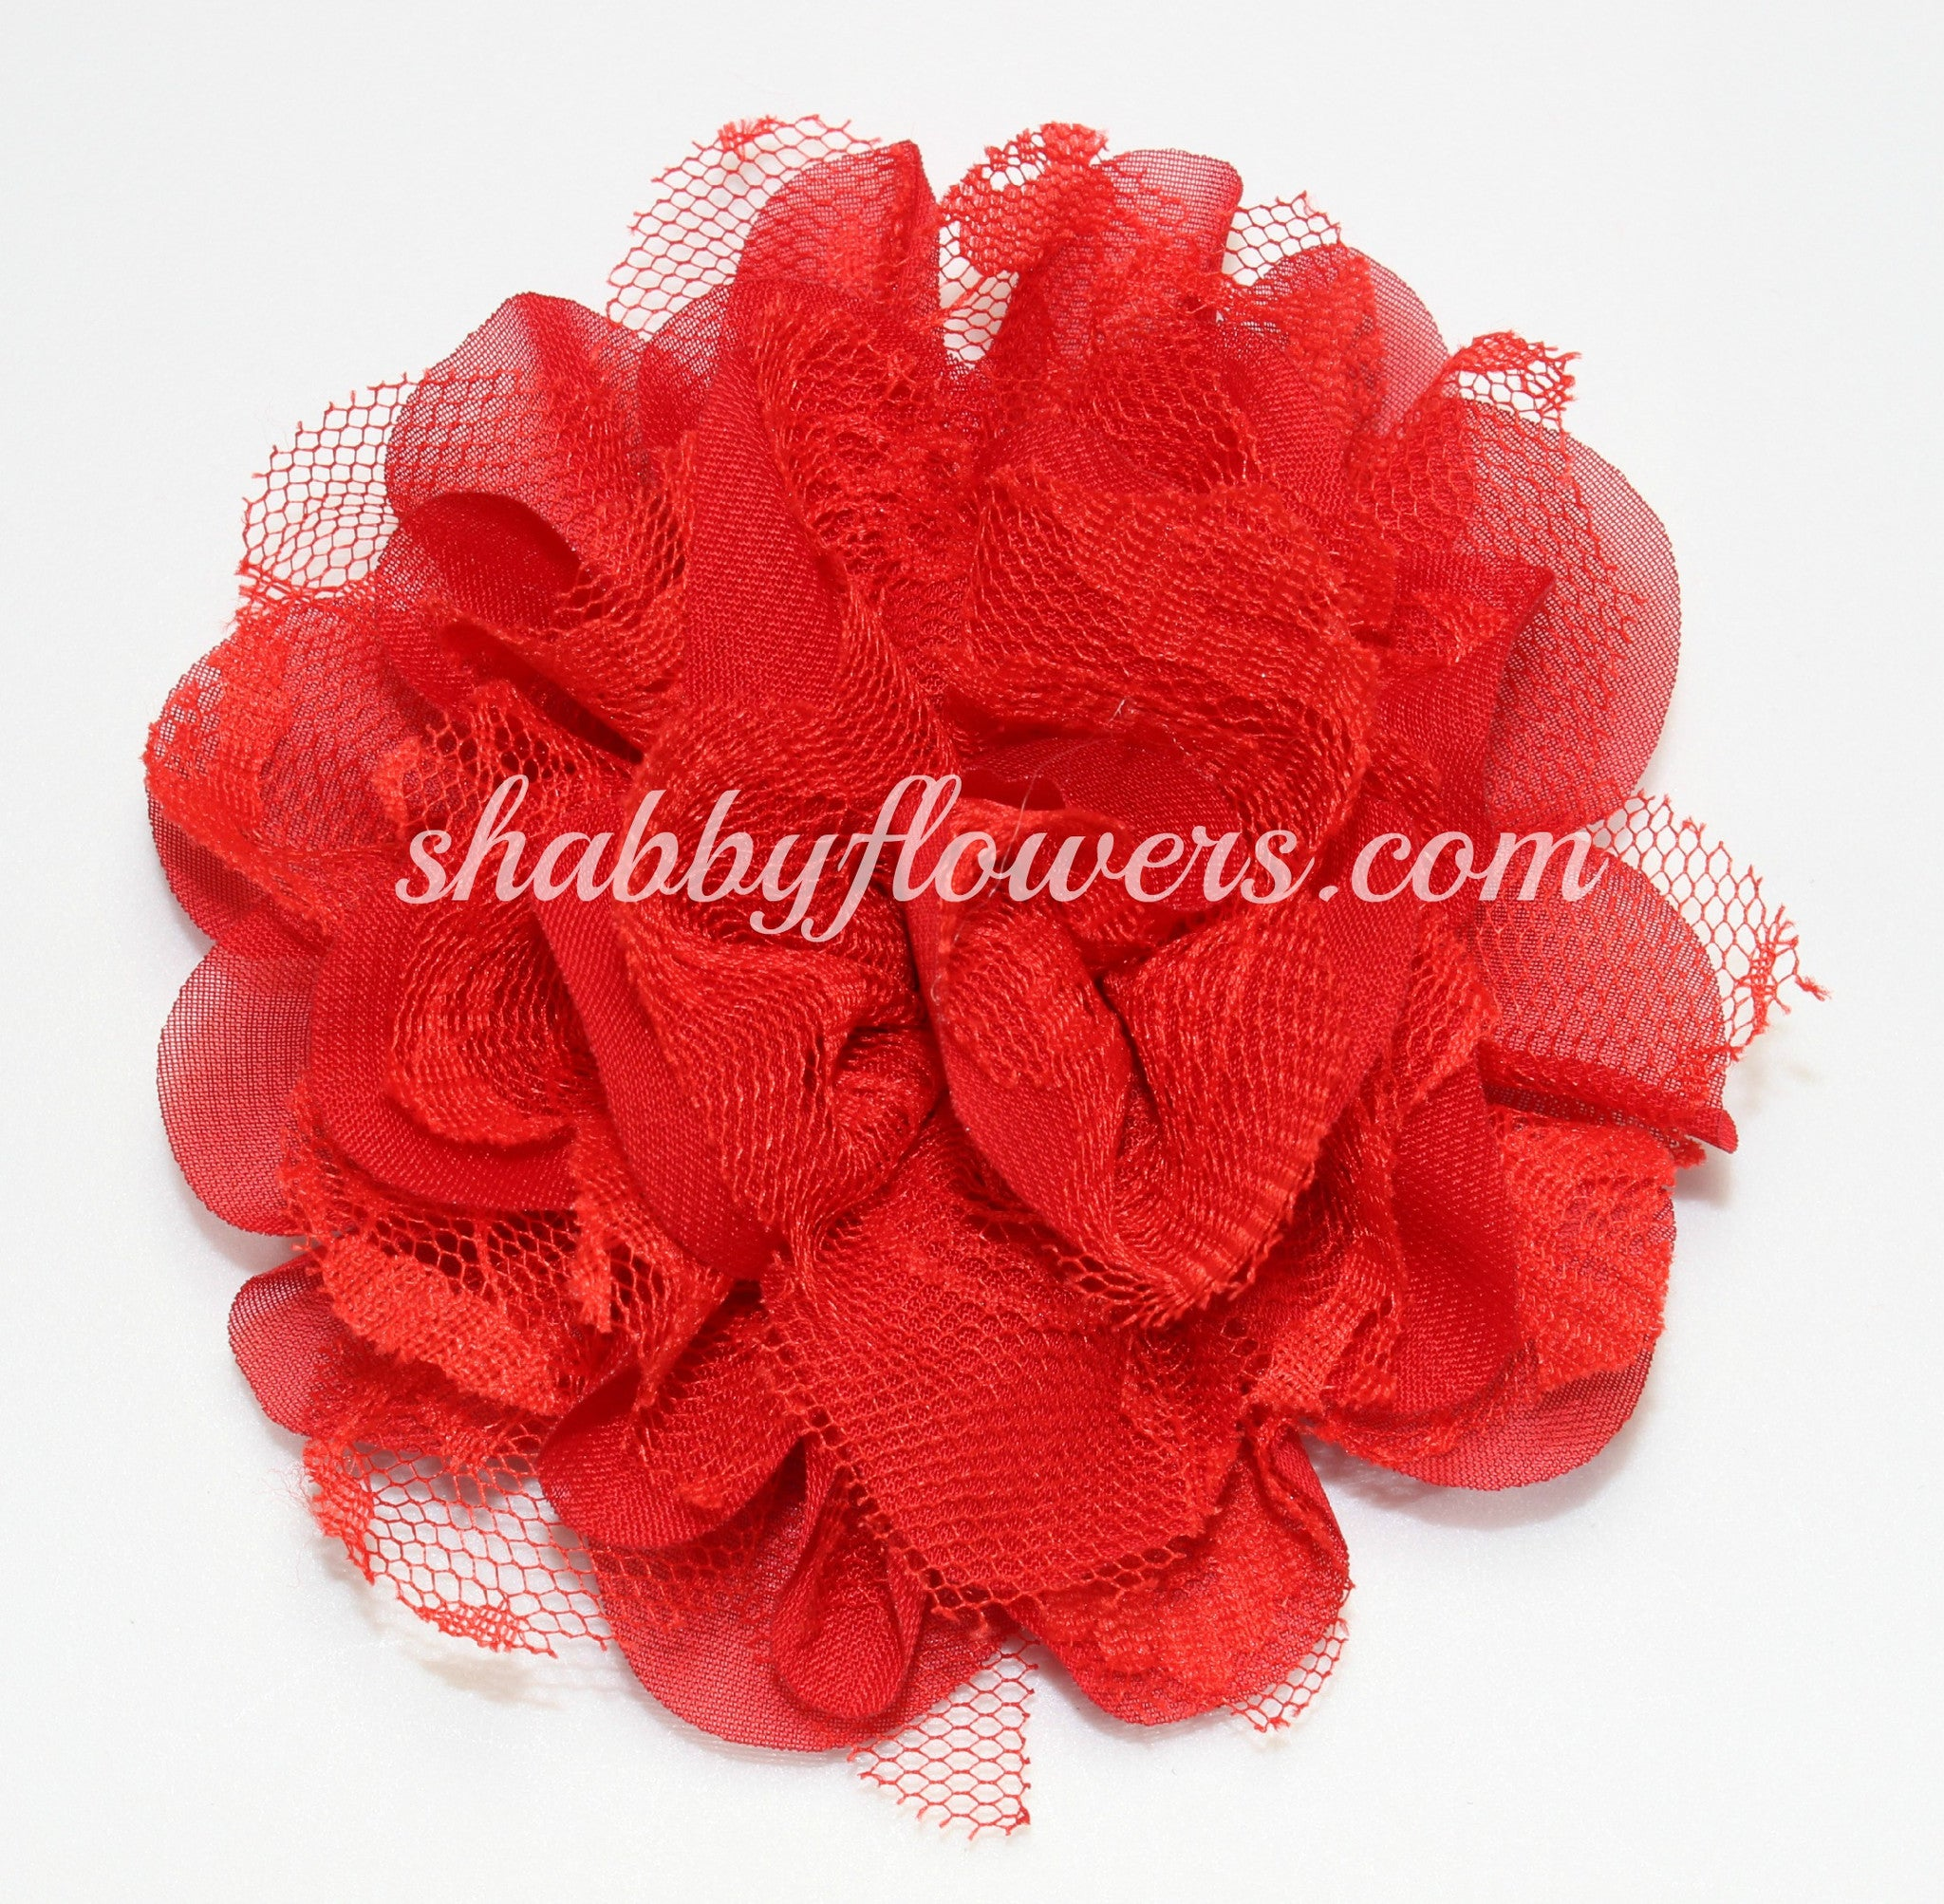 Chiffon and Lace Flower - Red - shabbyflowers.com